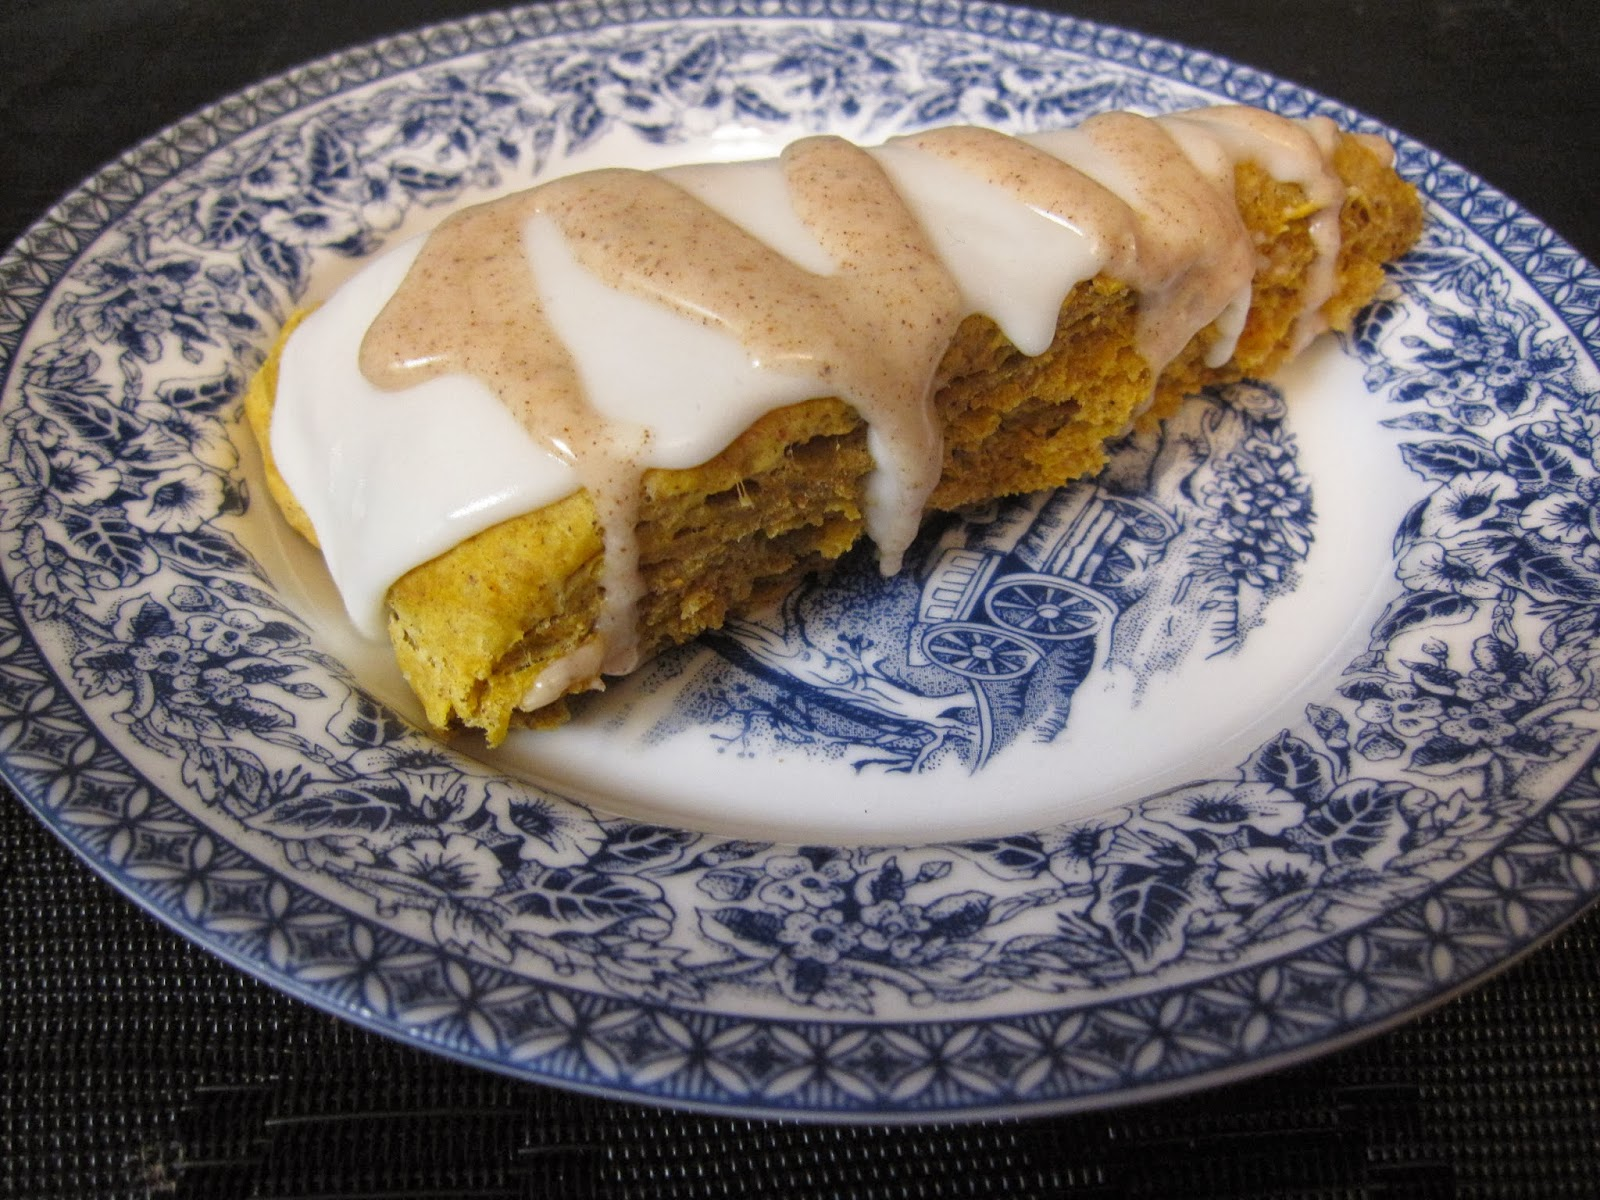 Taste of...: Starbucks Pumpkin Scones